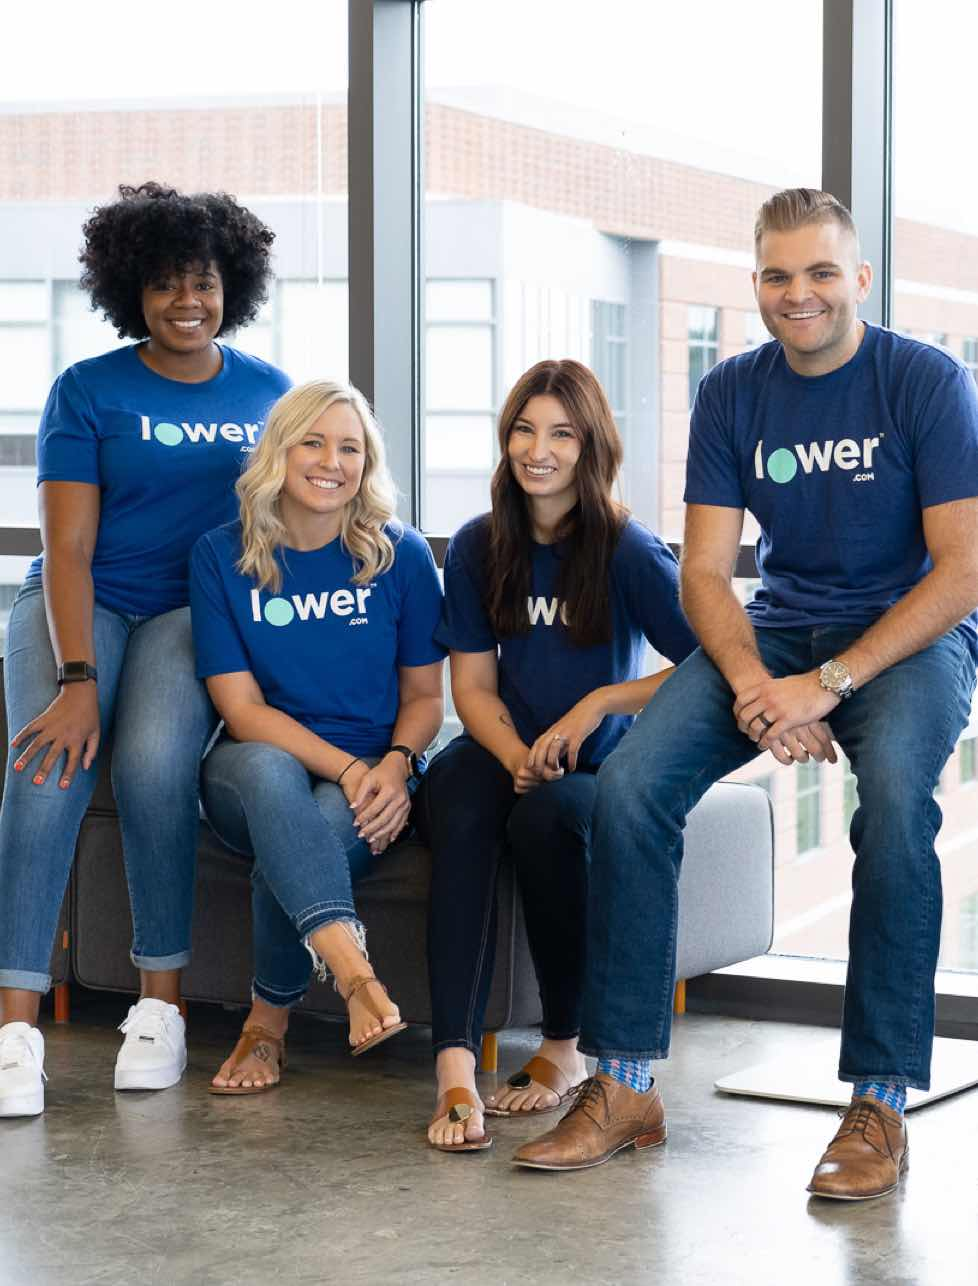 Friendly Lower employees ready to help you with all your mortgage needs, able to answer your every question